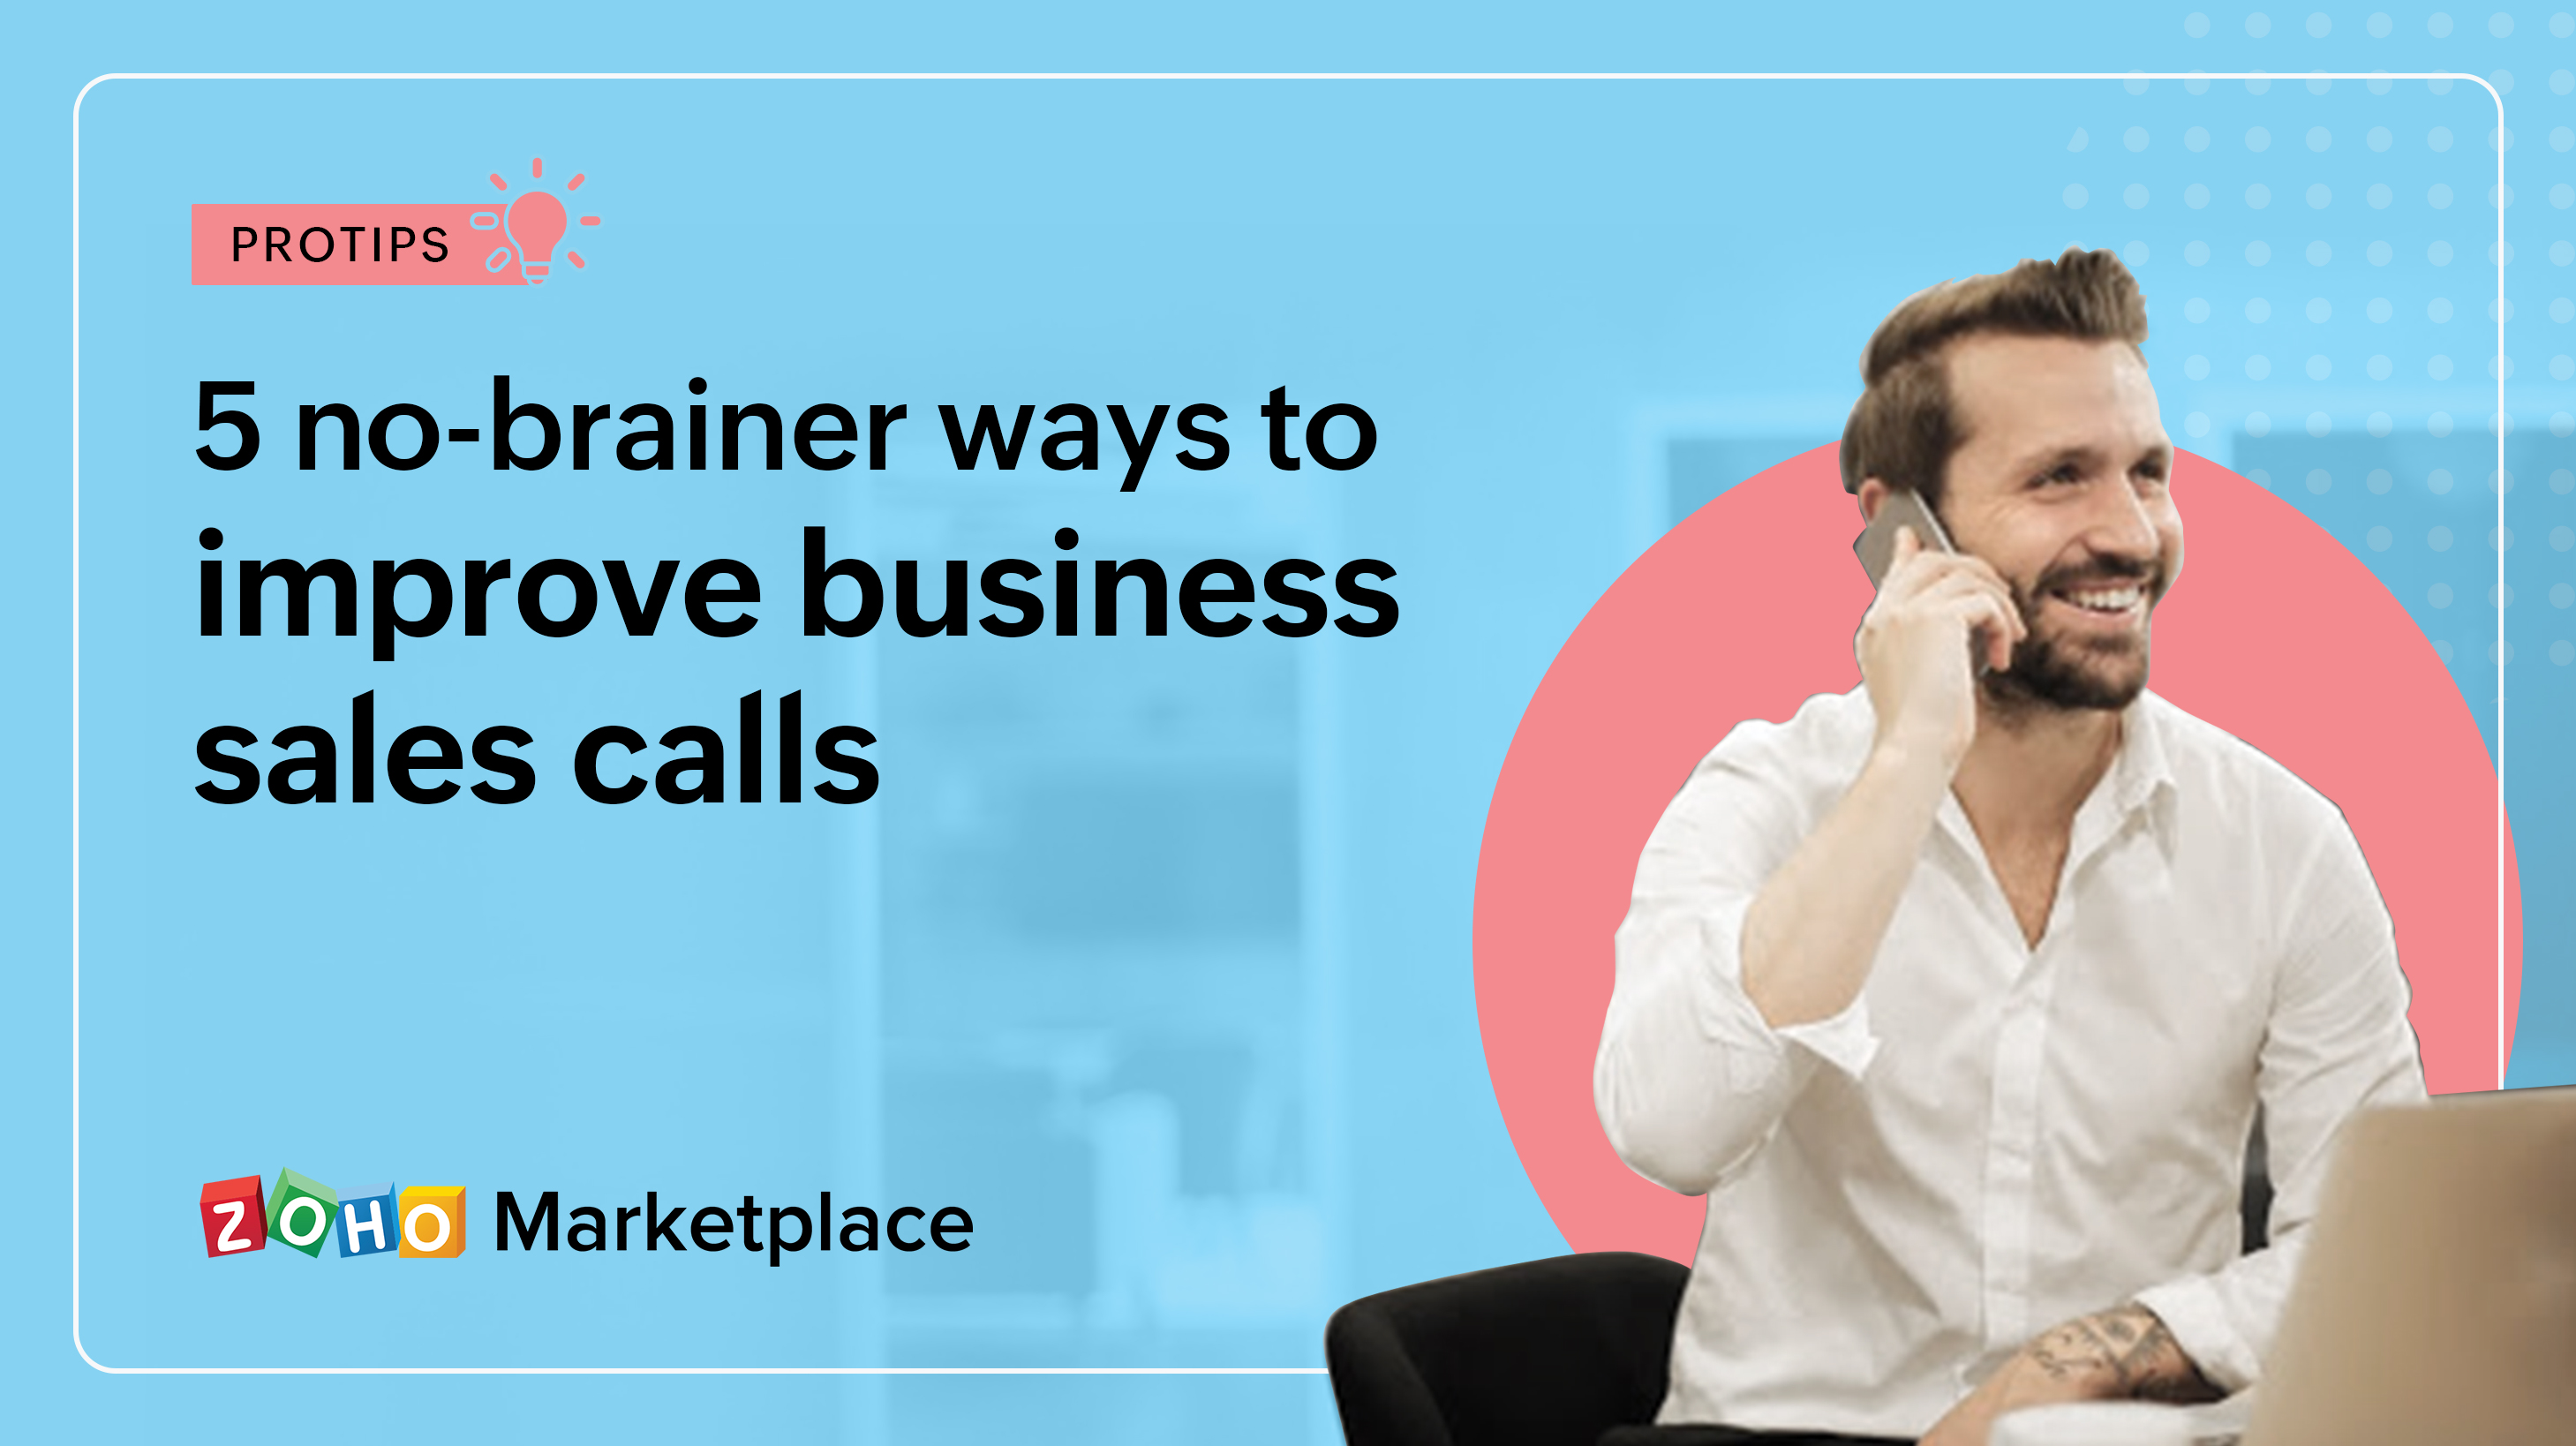 ProTips: 5 no-brainer ways to improve business sales calls